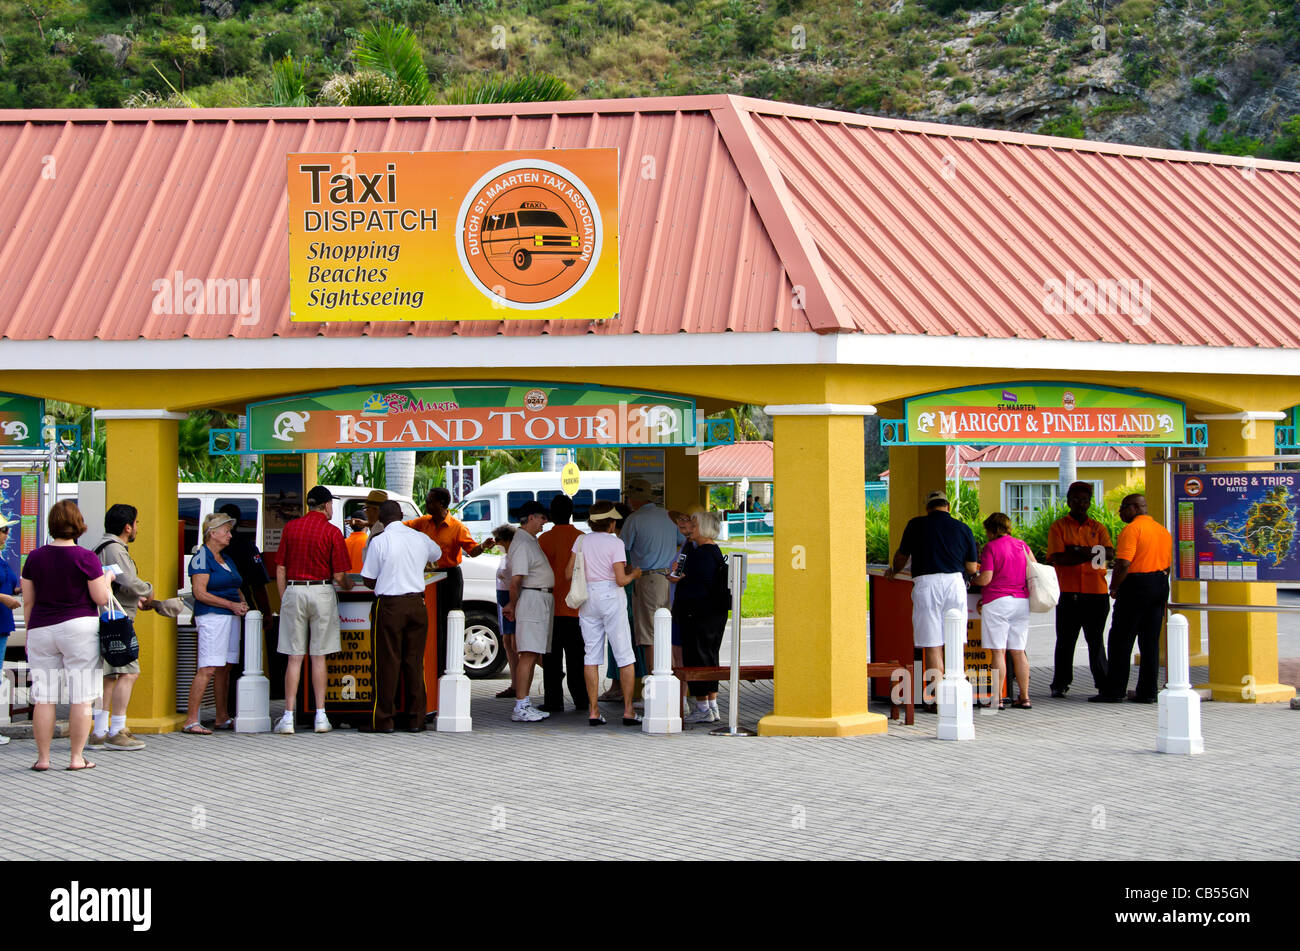 St Maarten cruise port taxi and tour pickup area - Stock Image